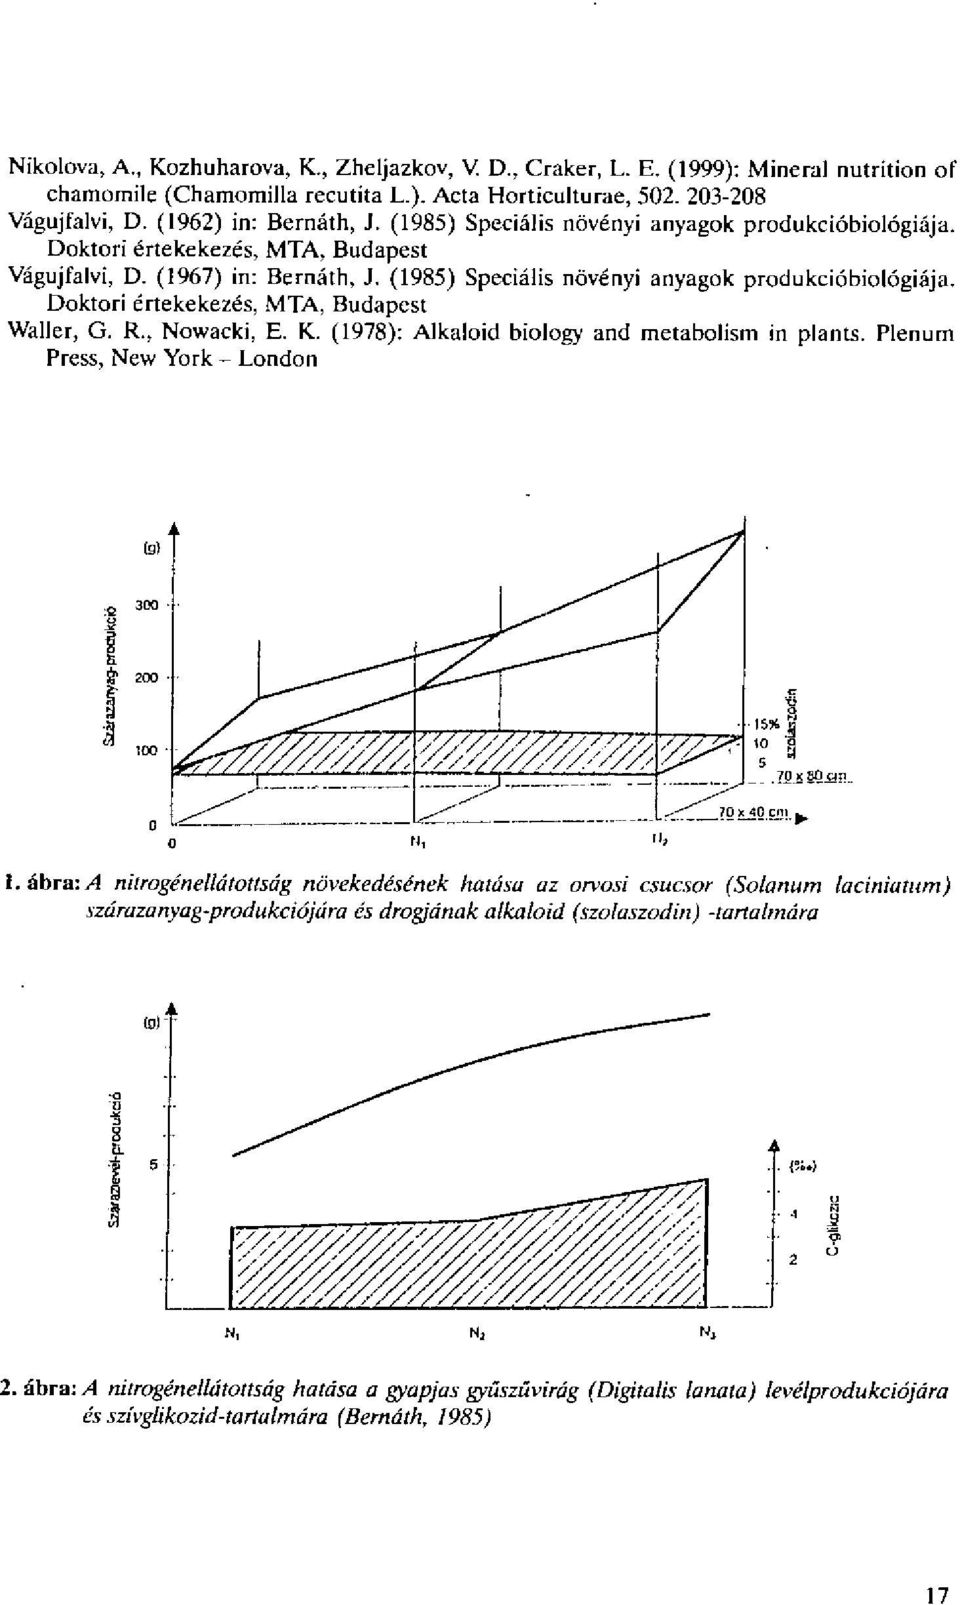 Doktori 6rtekekezds, MTA, Budapest Waller, G. R., Nowacki, E. K. (1978): Alkaloid biology and metabolism in plants. Plenum Press, New York - London (g) og,jlii, 15%....T 40 om I.